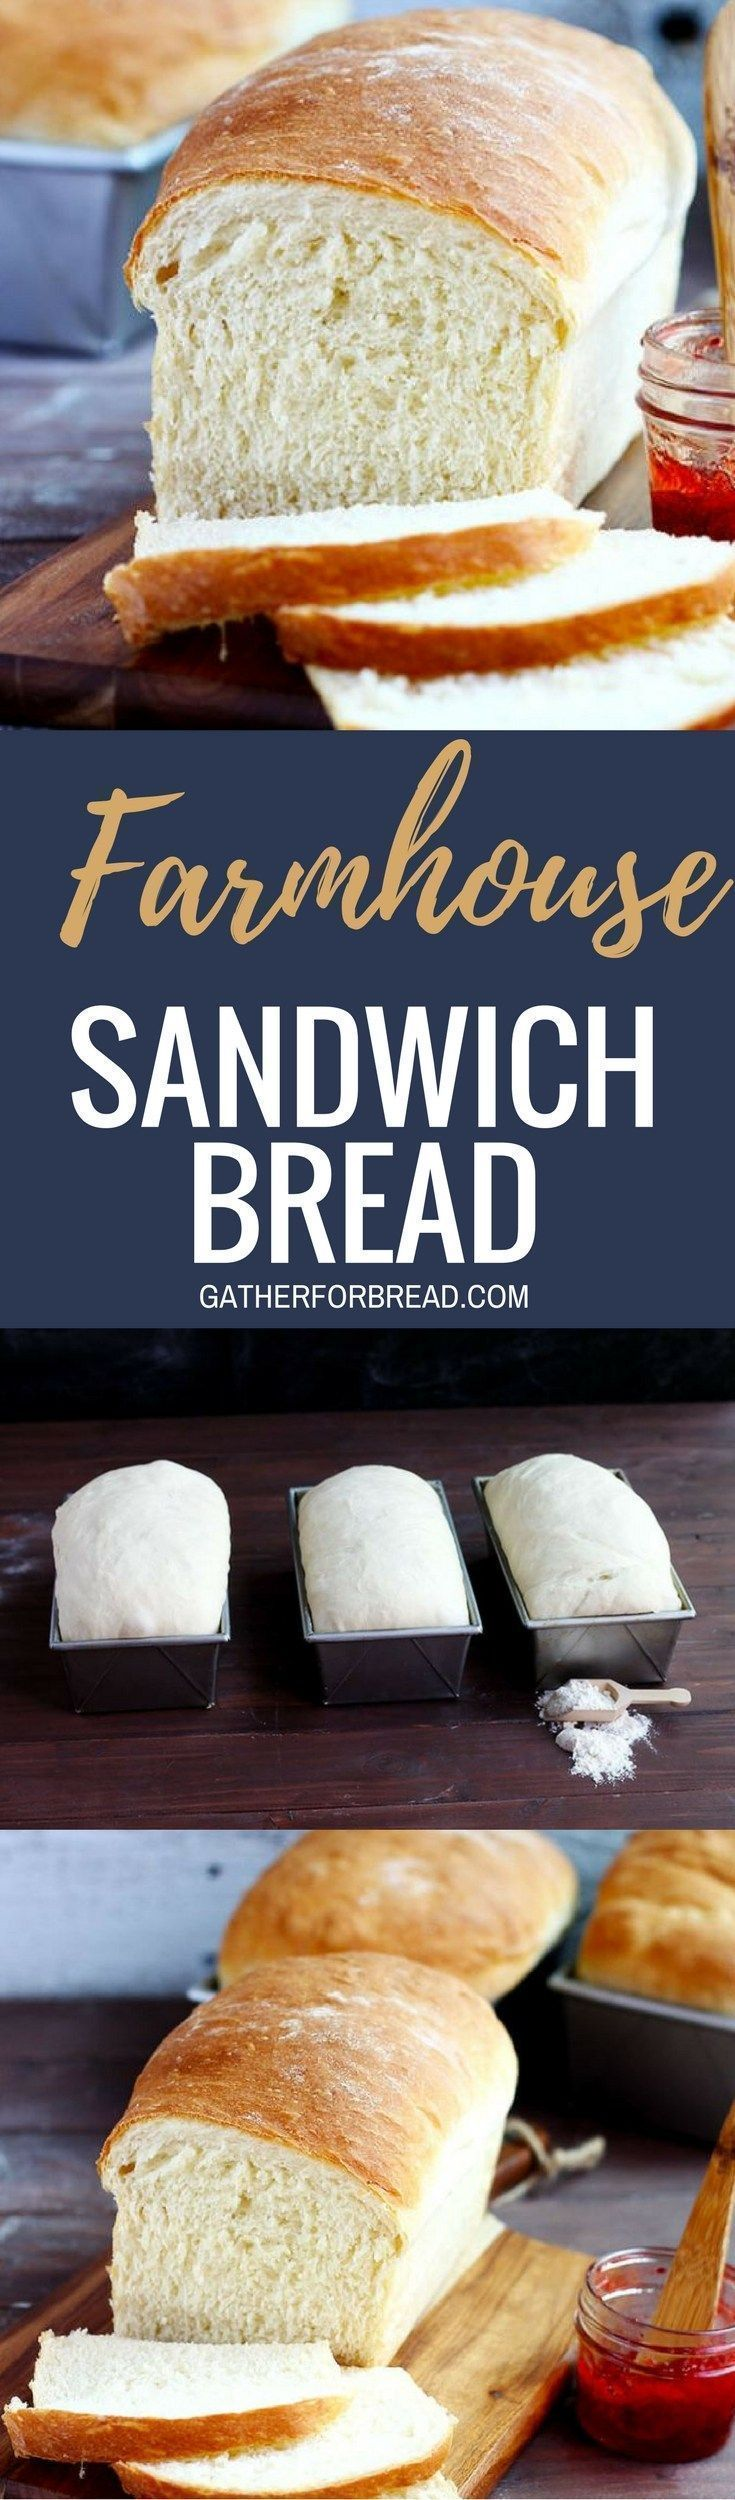 Farmhouse Sandwich Bread - Popular White bread recipe for an easy sandwich loaf. Delicious and amazing! #homemade #bread #yeast #whitebread #farmhouse #country #sandwich